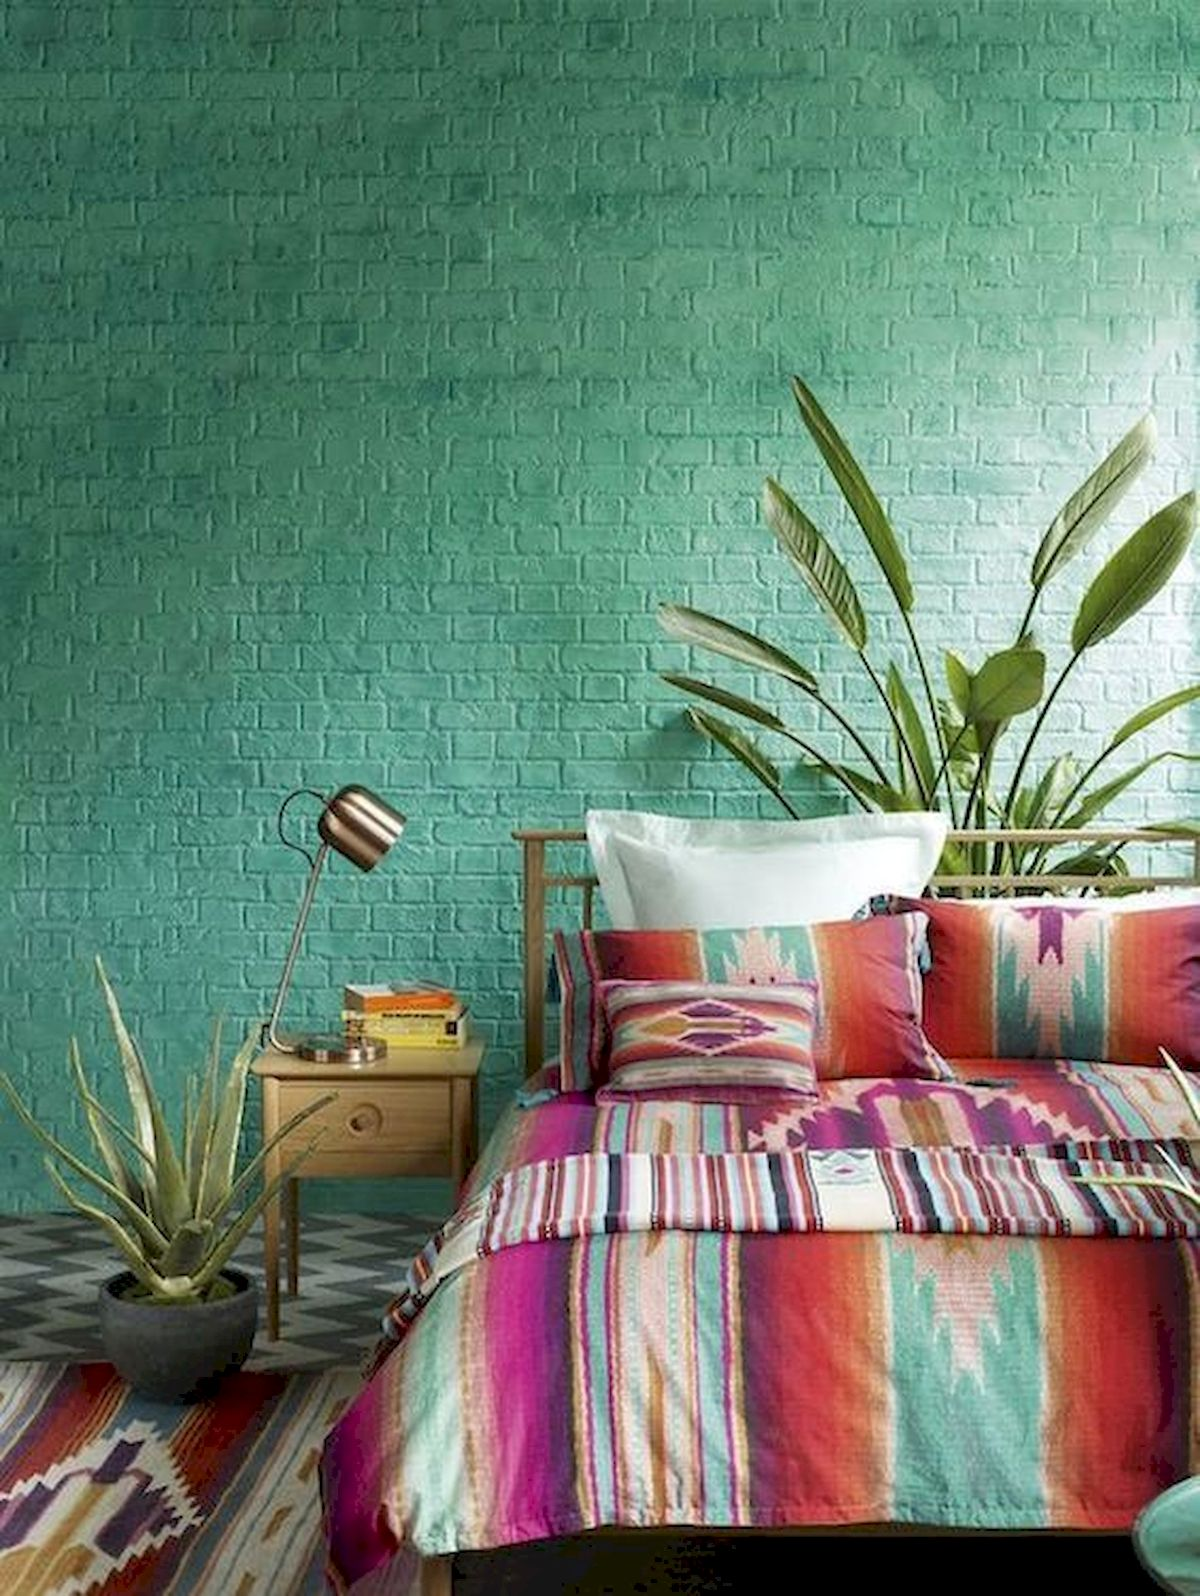 70 Beautiful DIY Colorful Bedroom Design Ideas and Remodel (44)